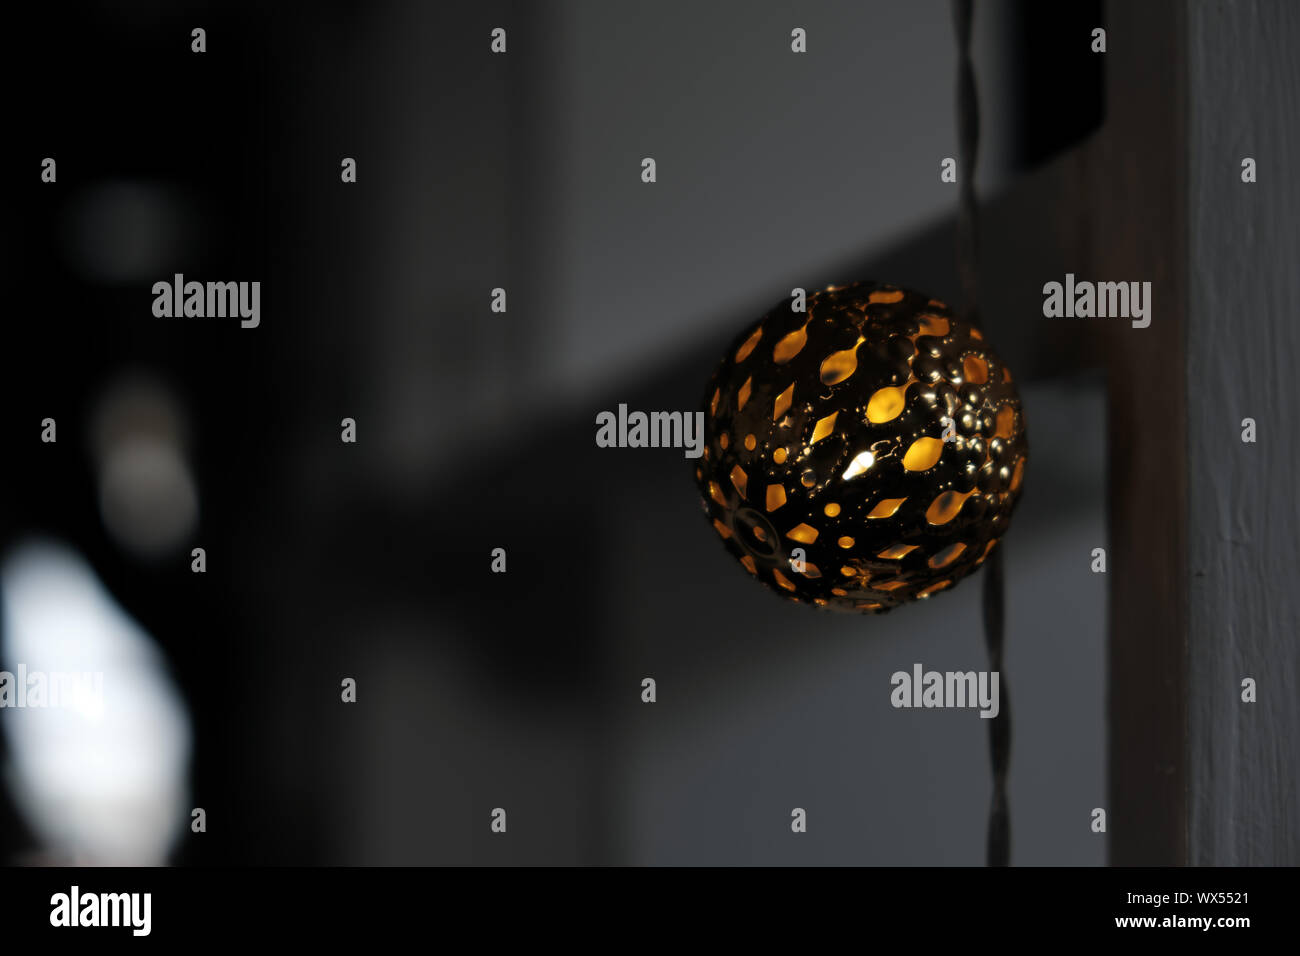 Decorative Lights for Home Stock Photo